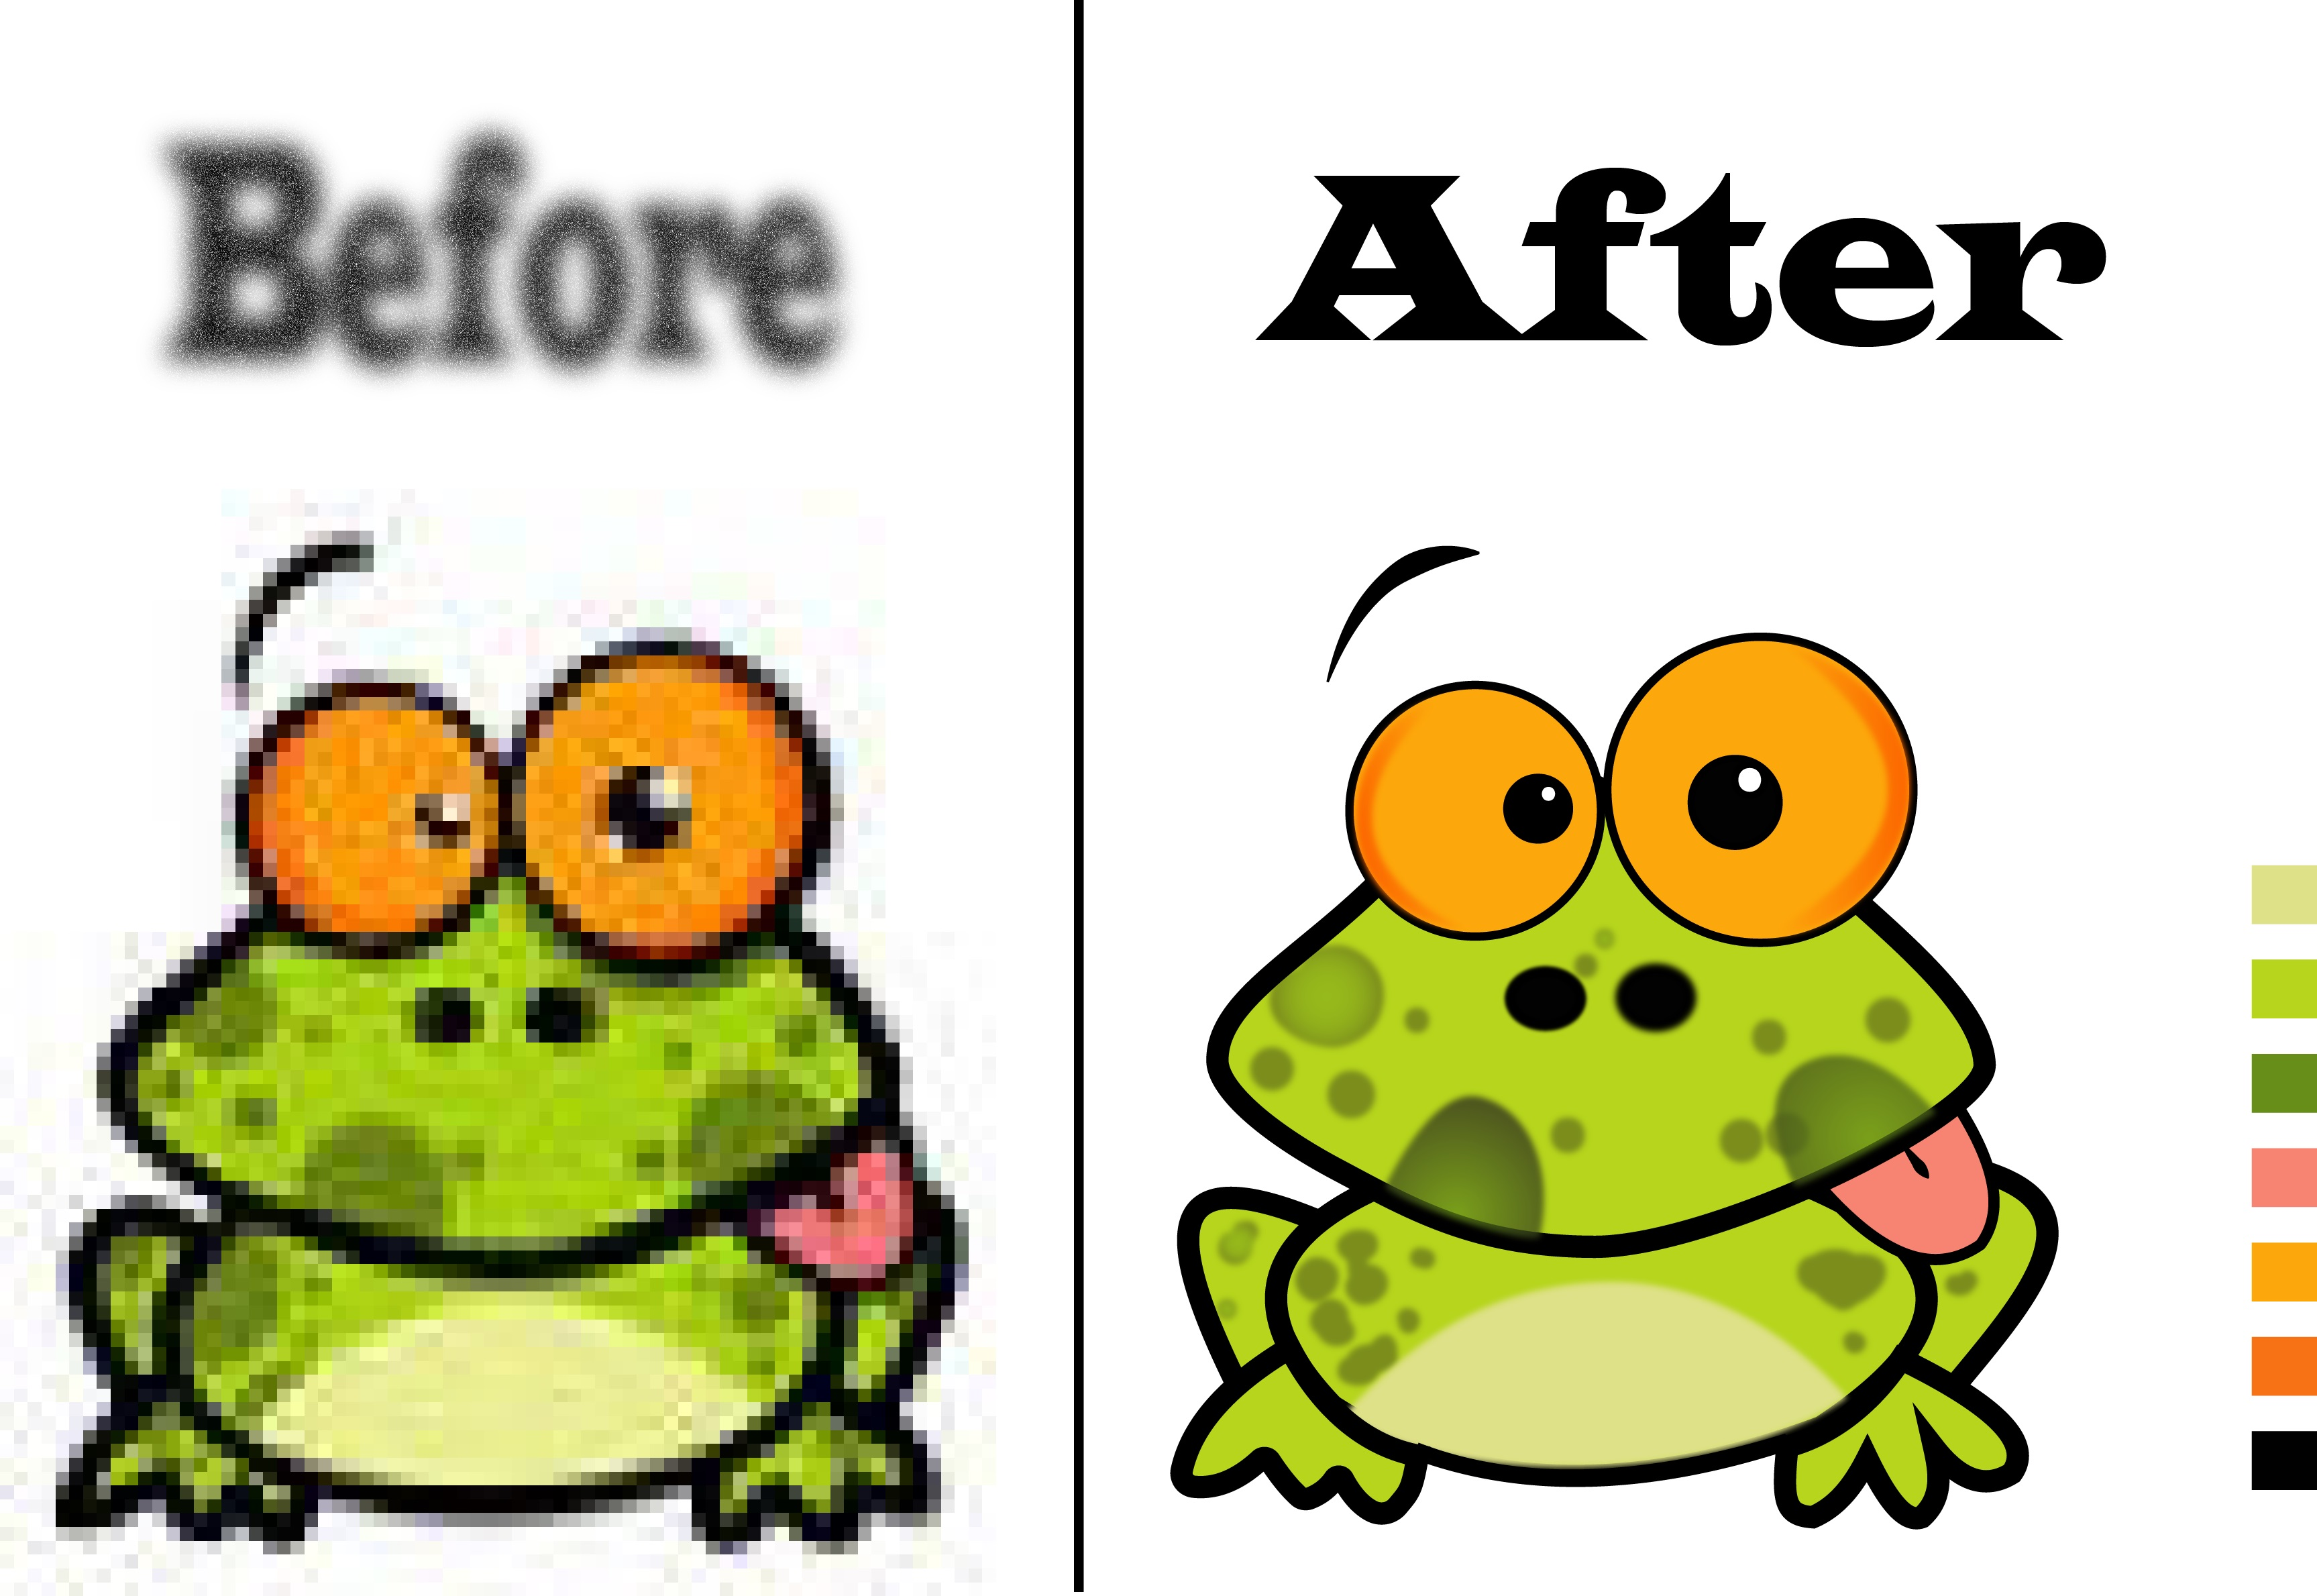 redraw your low quality image or logo into vector